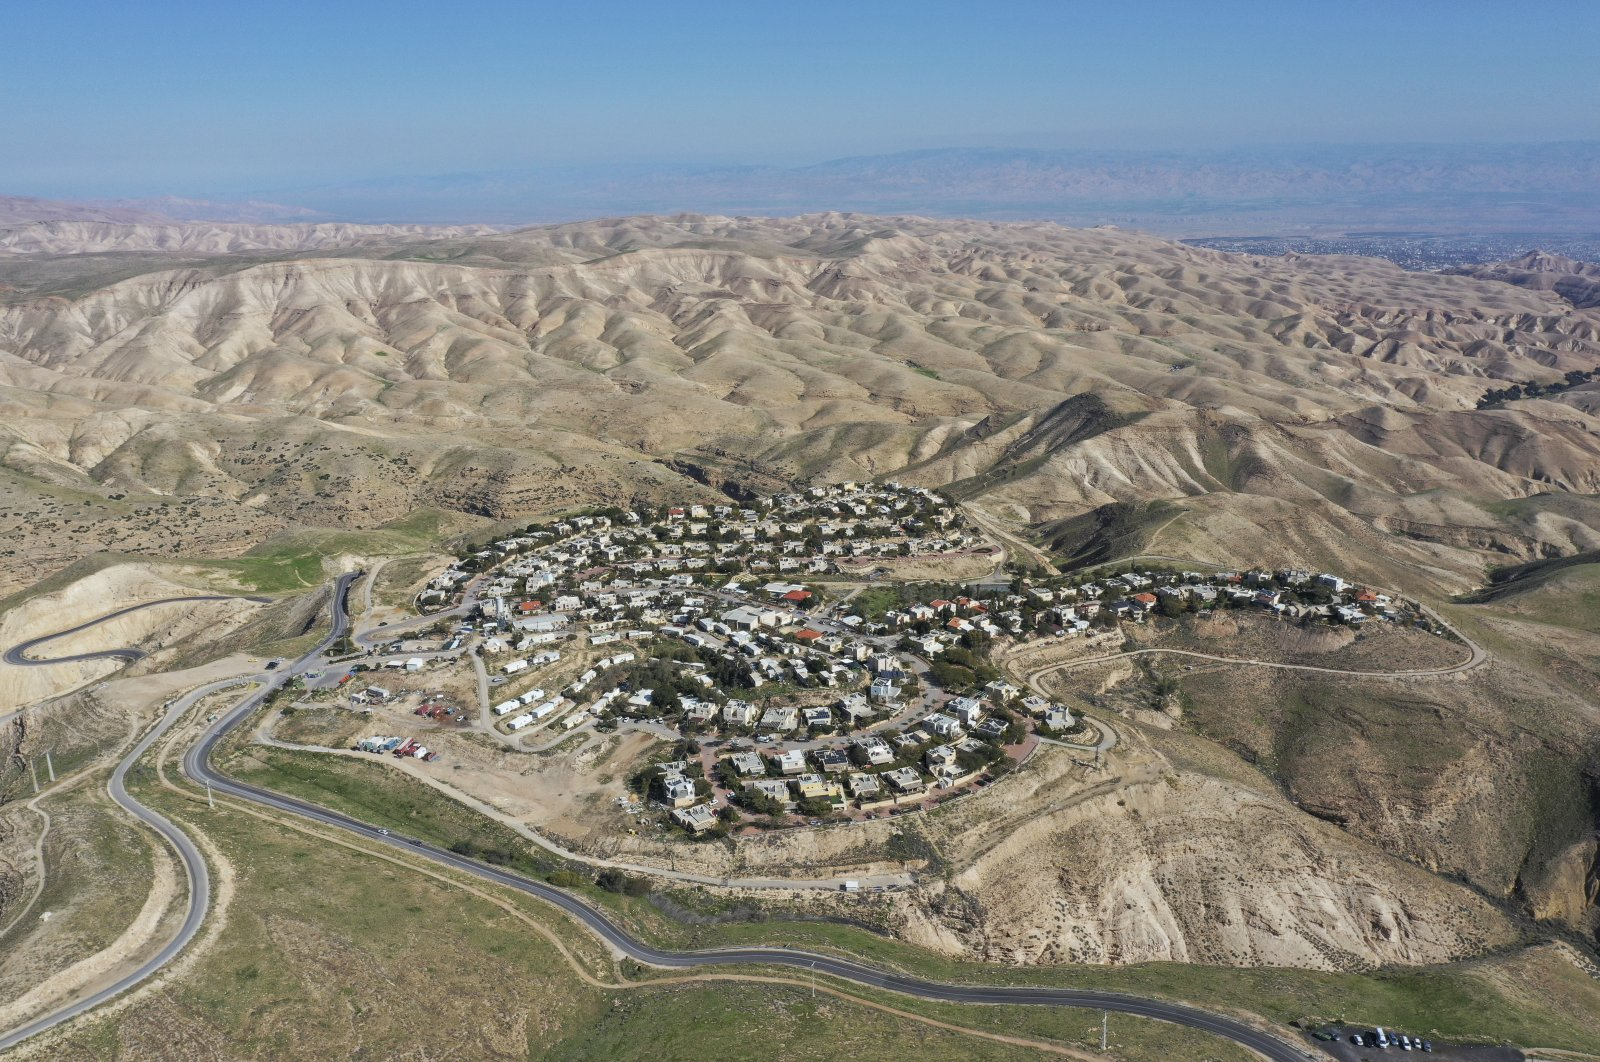 The Jewish settlement of Maale Michmash is seen in the occupied West Bank, Palestine, Jan. 26, 2020. (AP Photo)